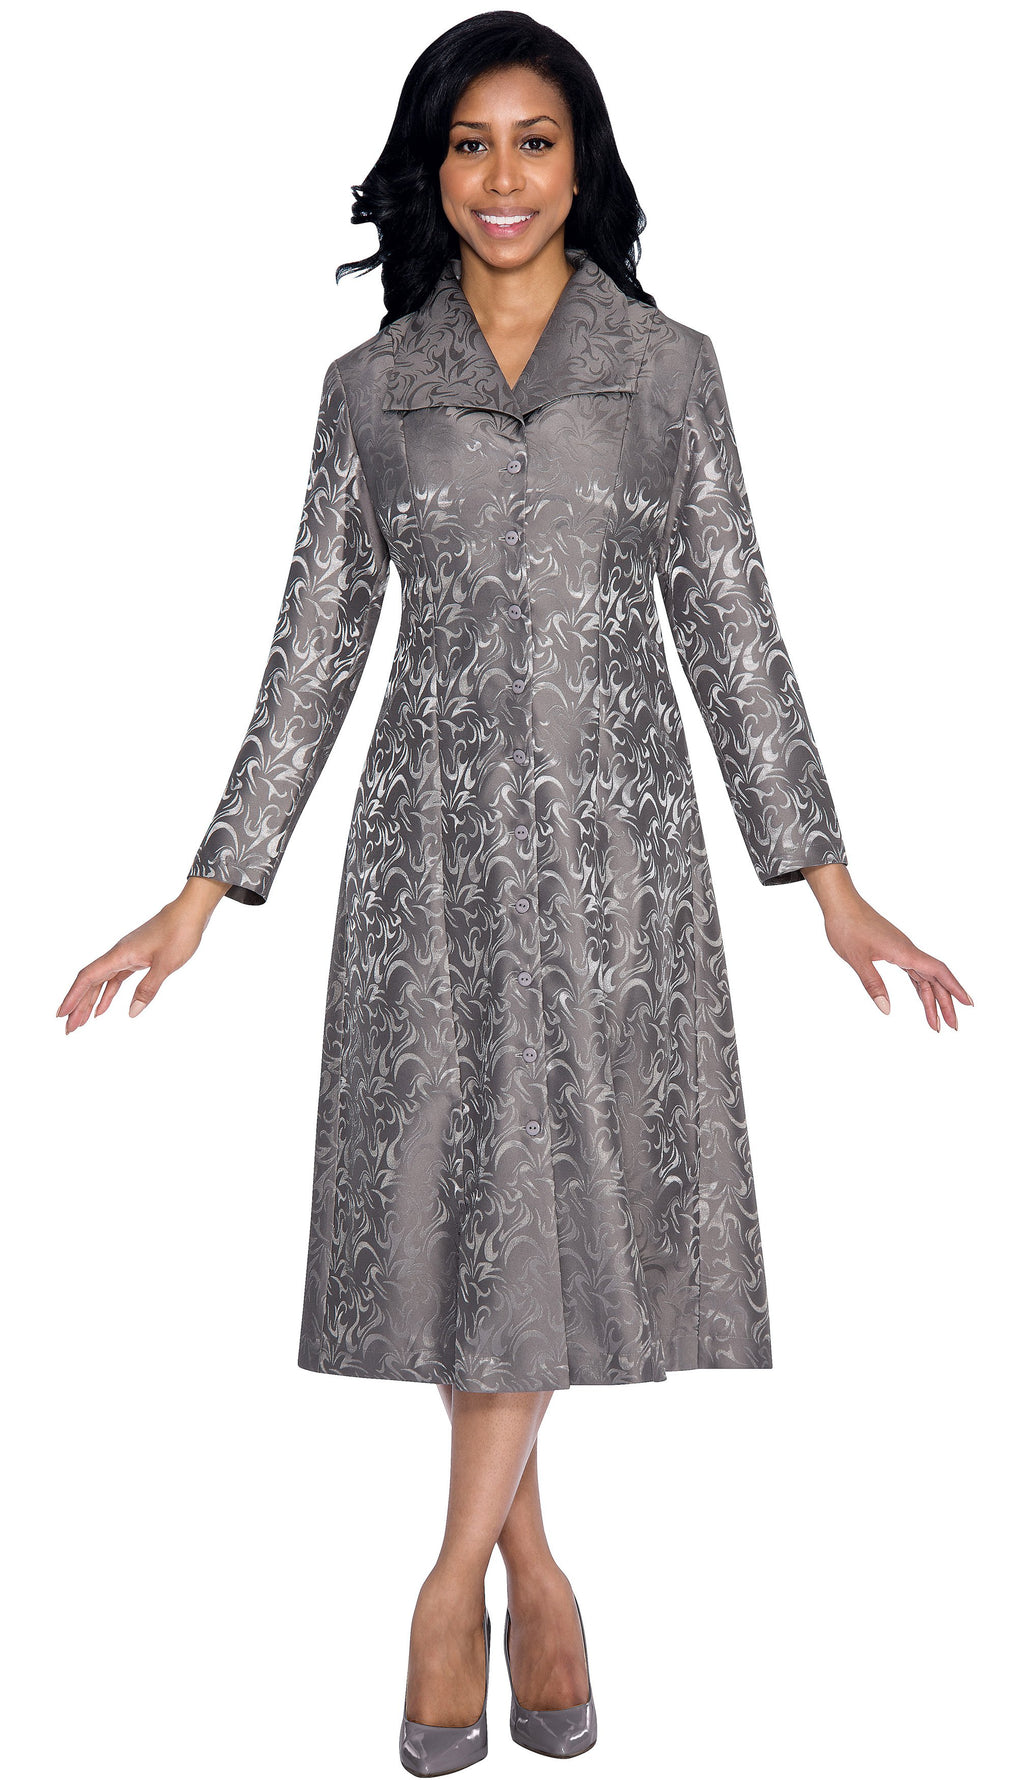 Brocade Group Dress